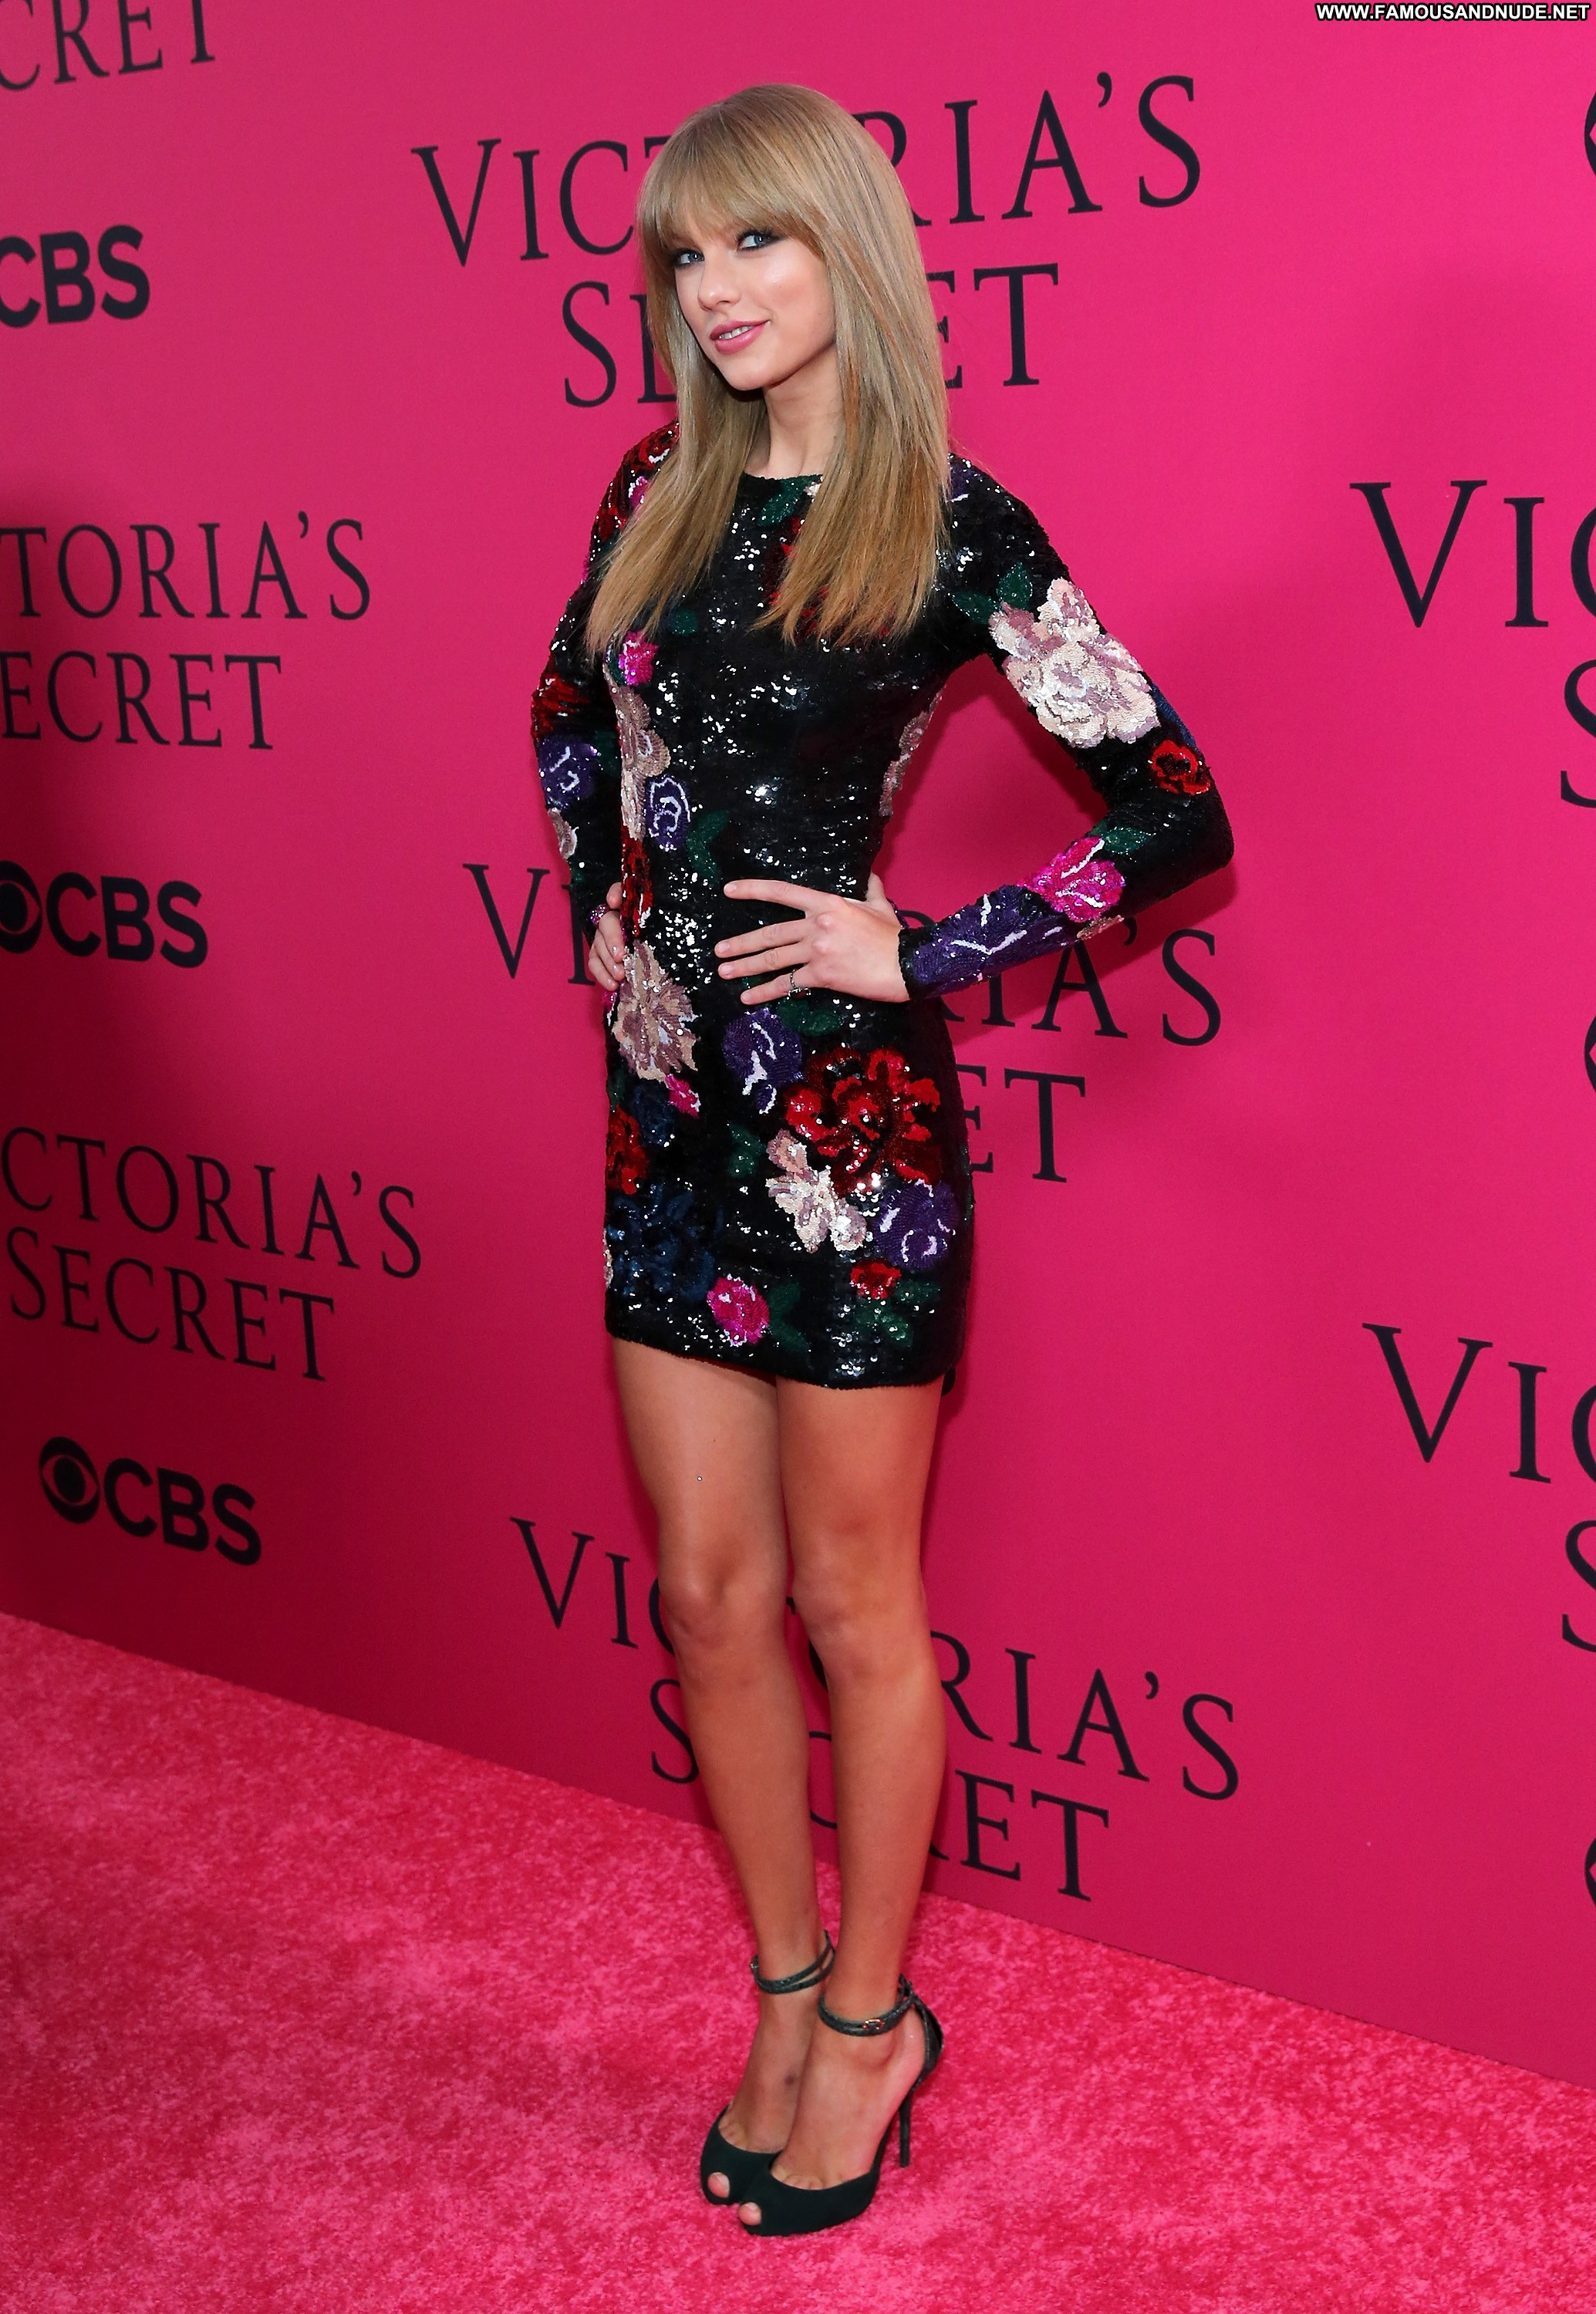 Taylor Swift Fashion Show Celebrity Beautiful Babe Posing -6585